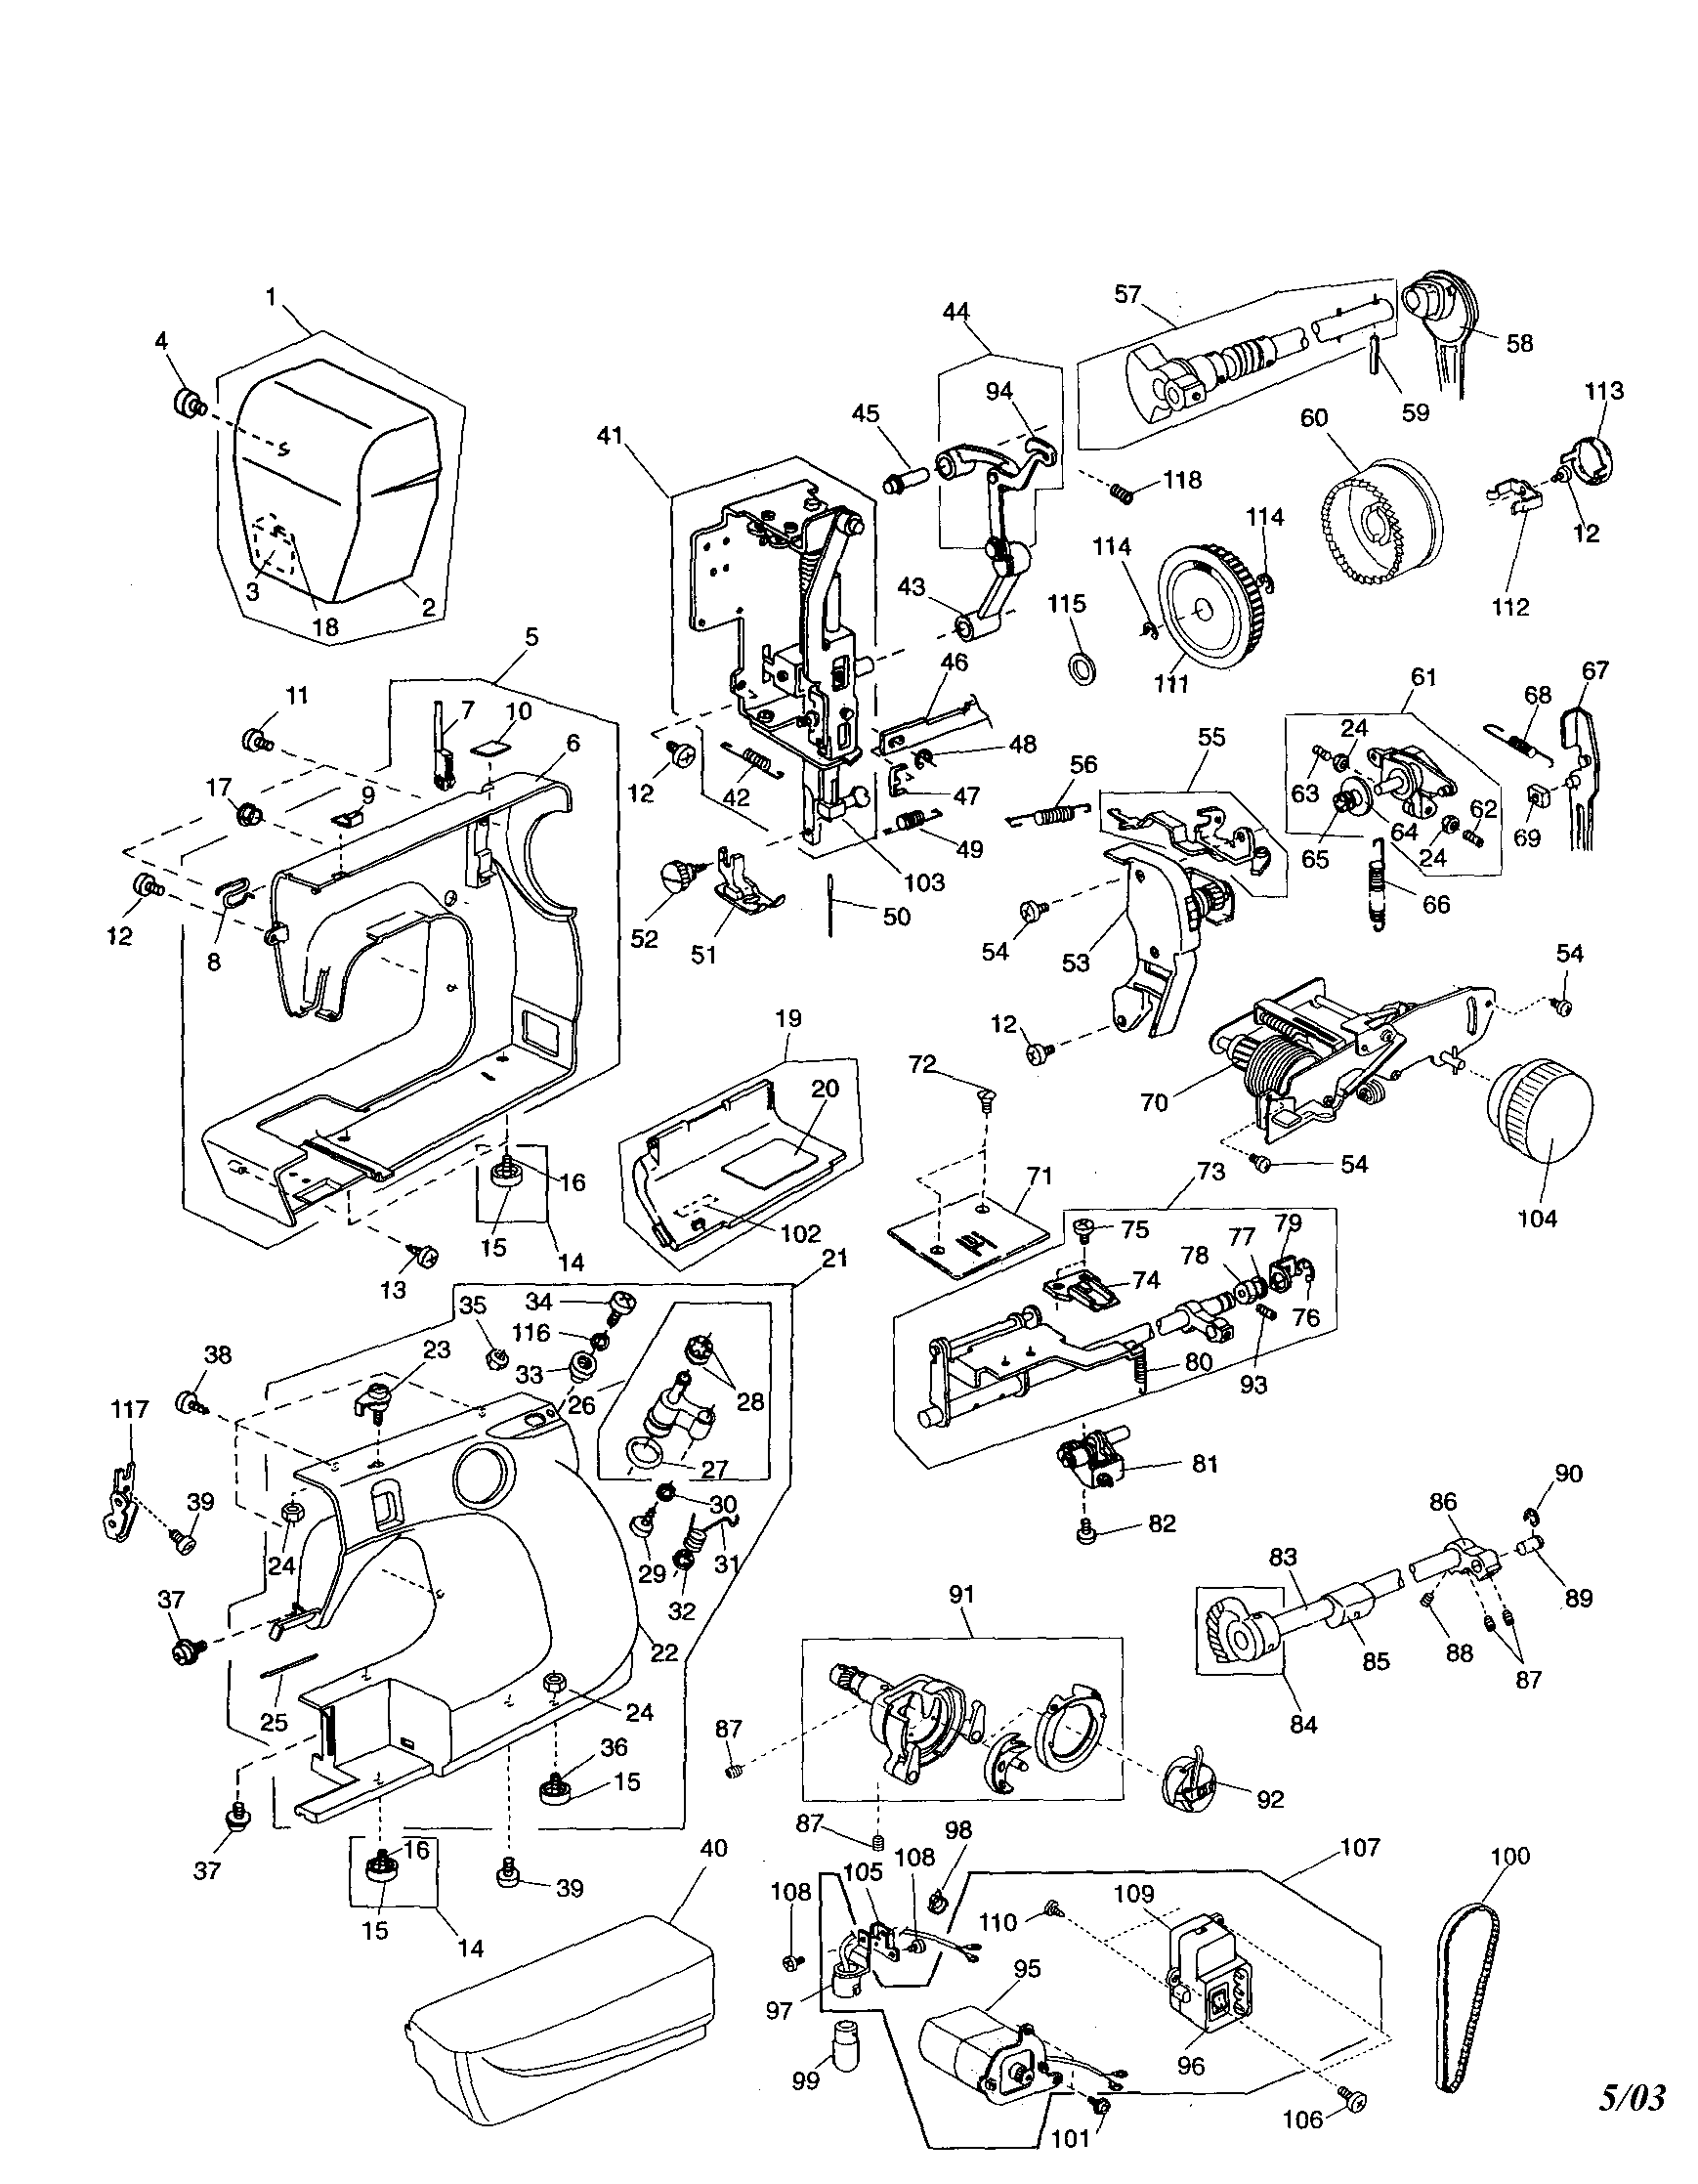 small resolution of kenmore sewing machine model 38511206300 sewing machine parts diagram